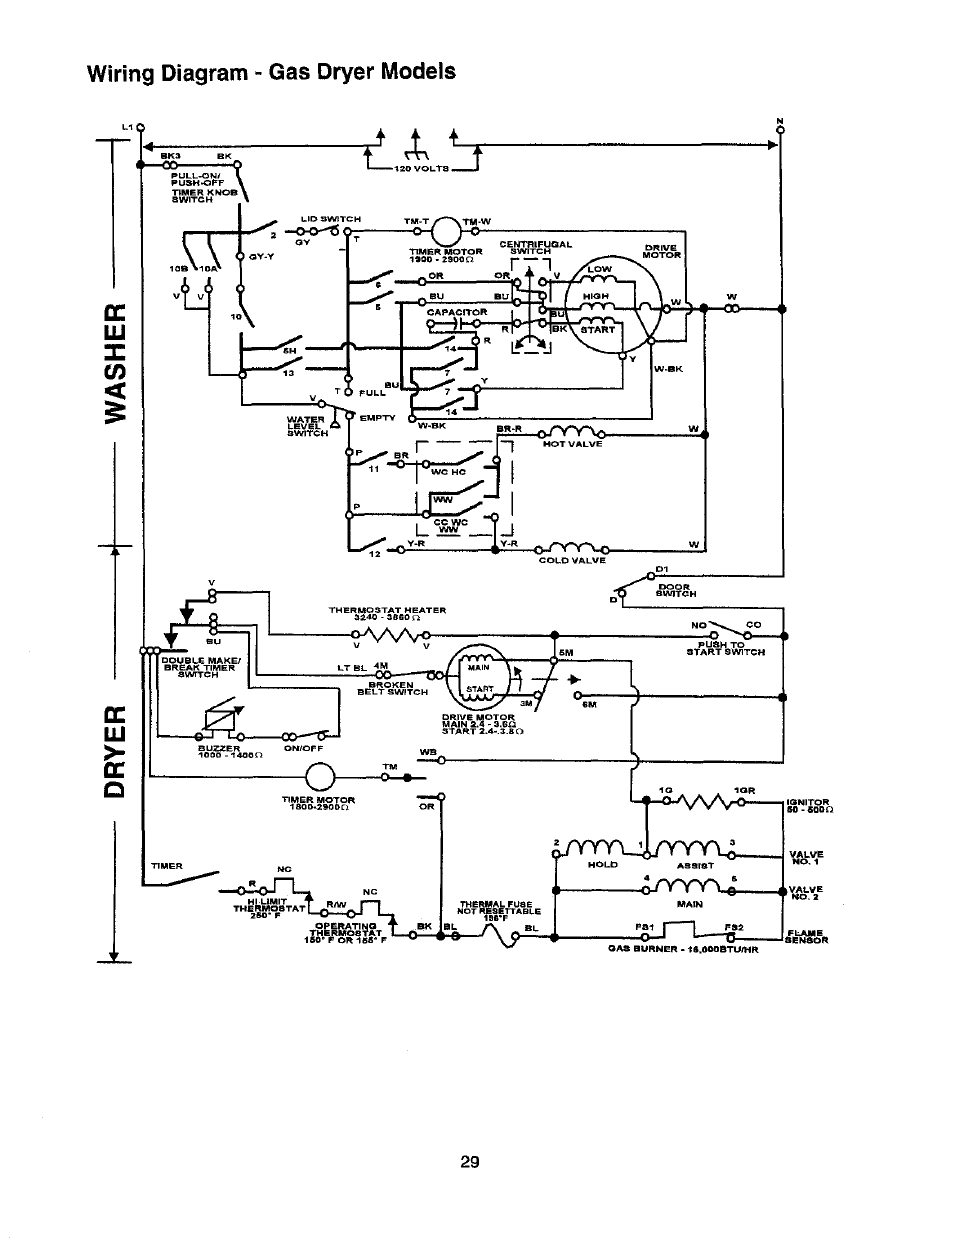 whirlpool thin twin page36 whirlpool thin twin wiring diagram whirlpool wiring diagrams  at creativeand.co